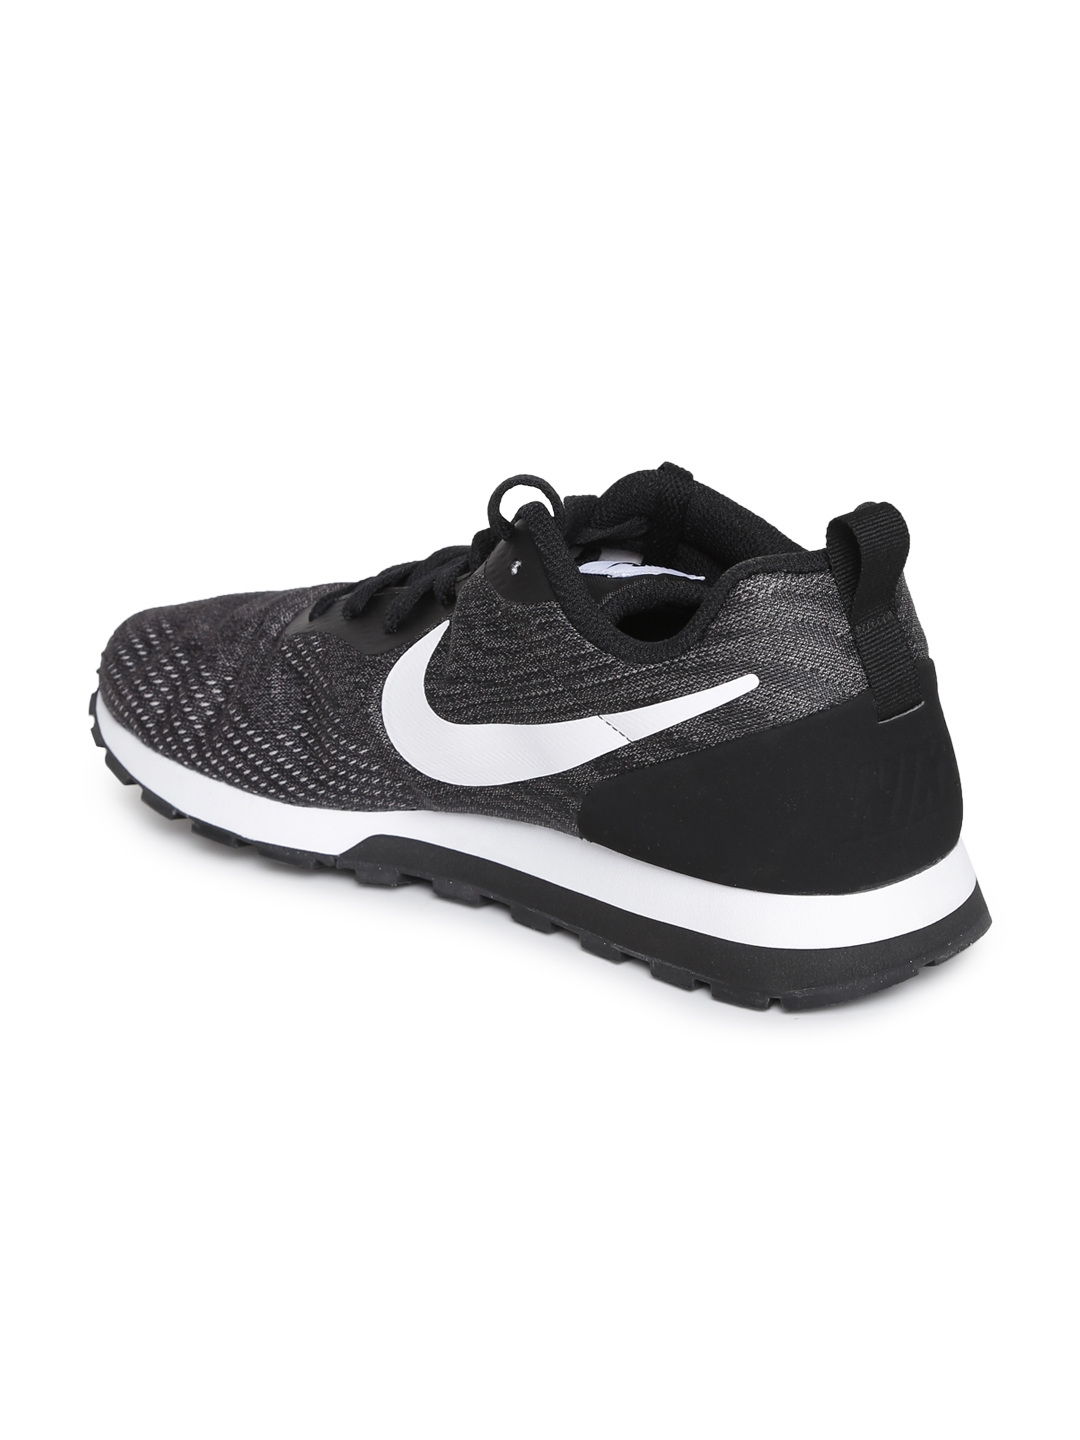 best cheap 8c9f1 1b46e 11513322354090-Nike-Men-Casual-Shoes-1901513322354013-2.jpg